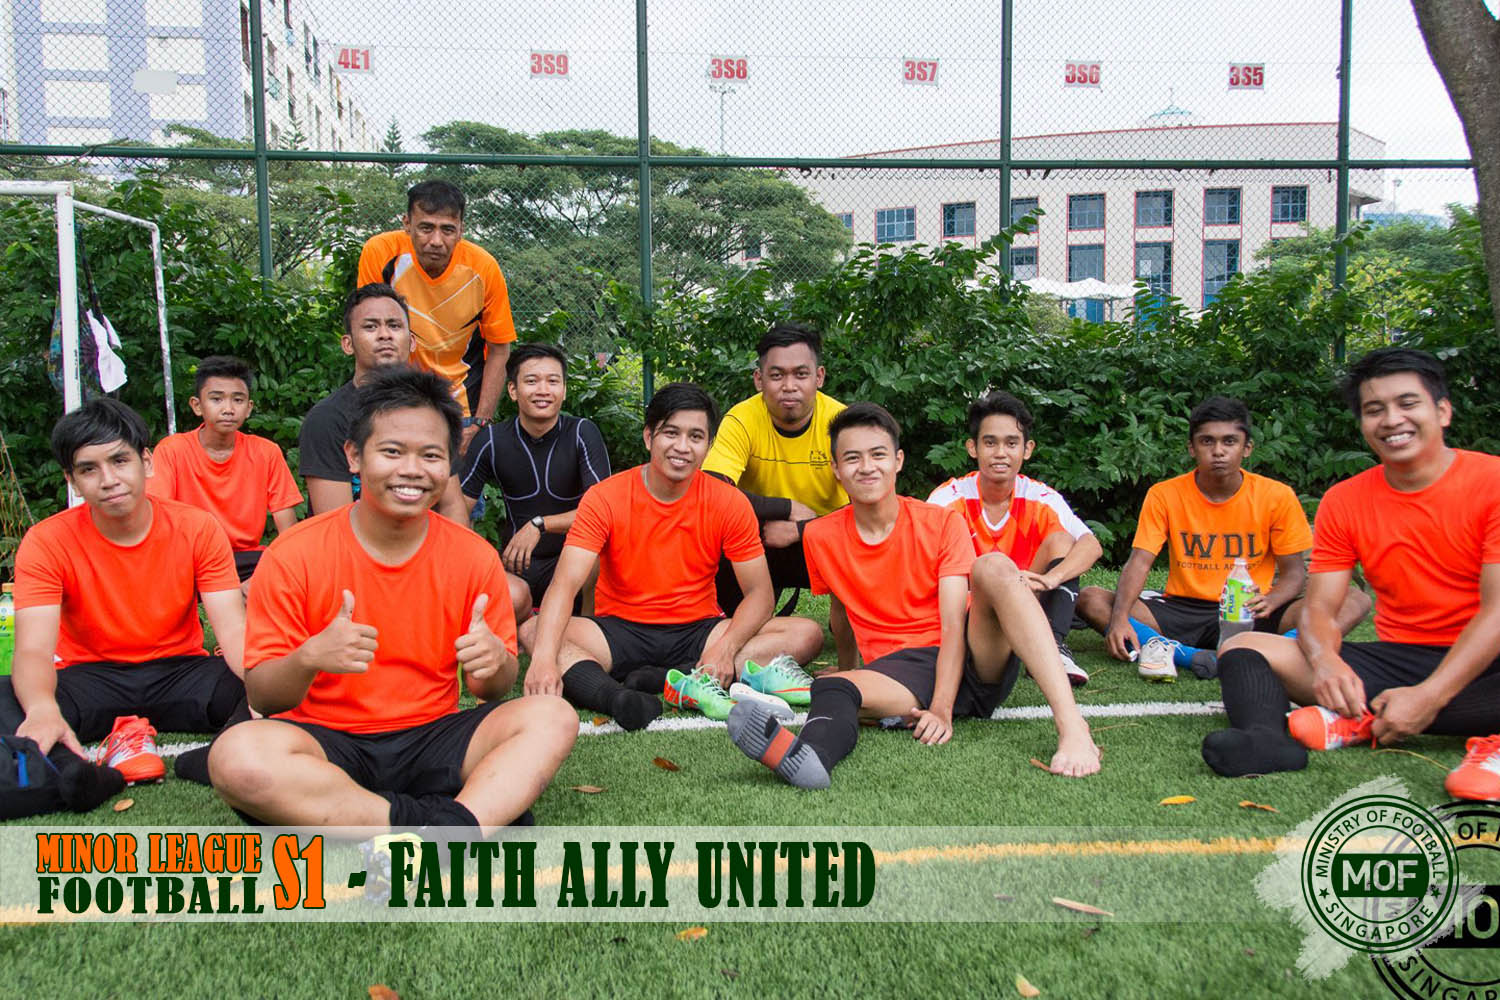 Faith Ally United